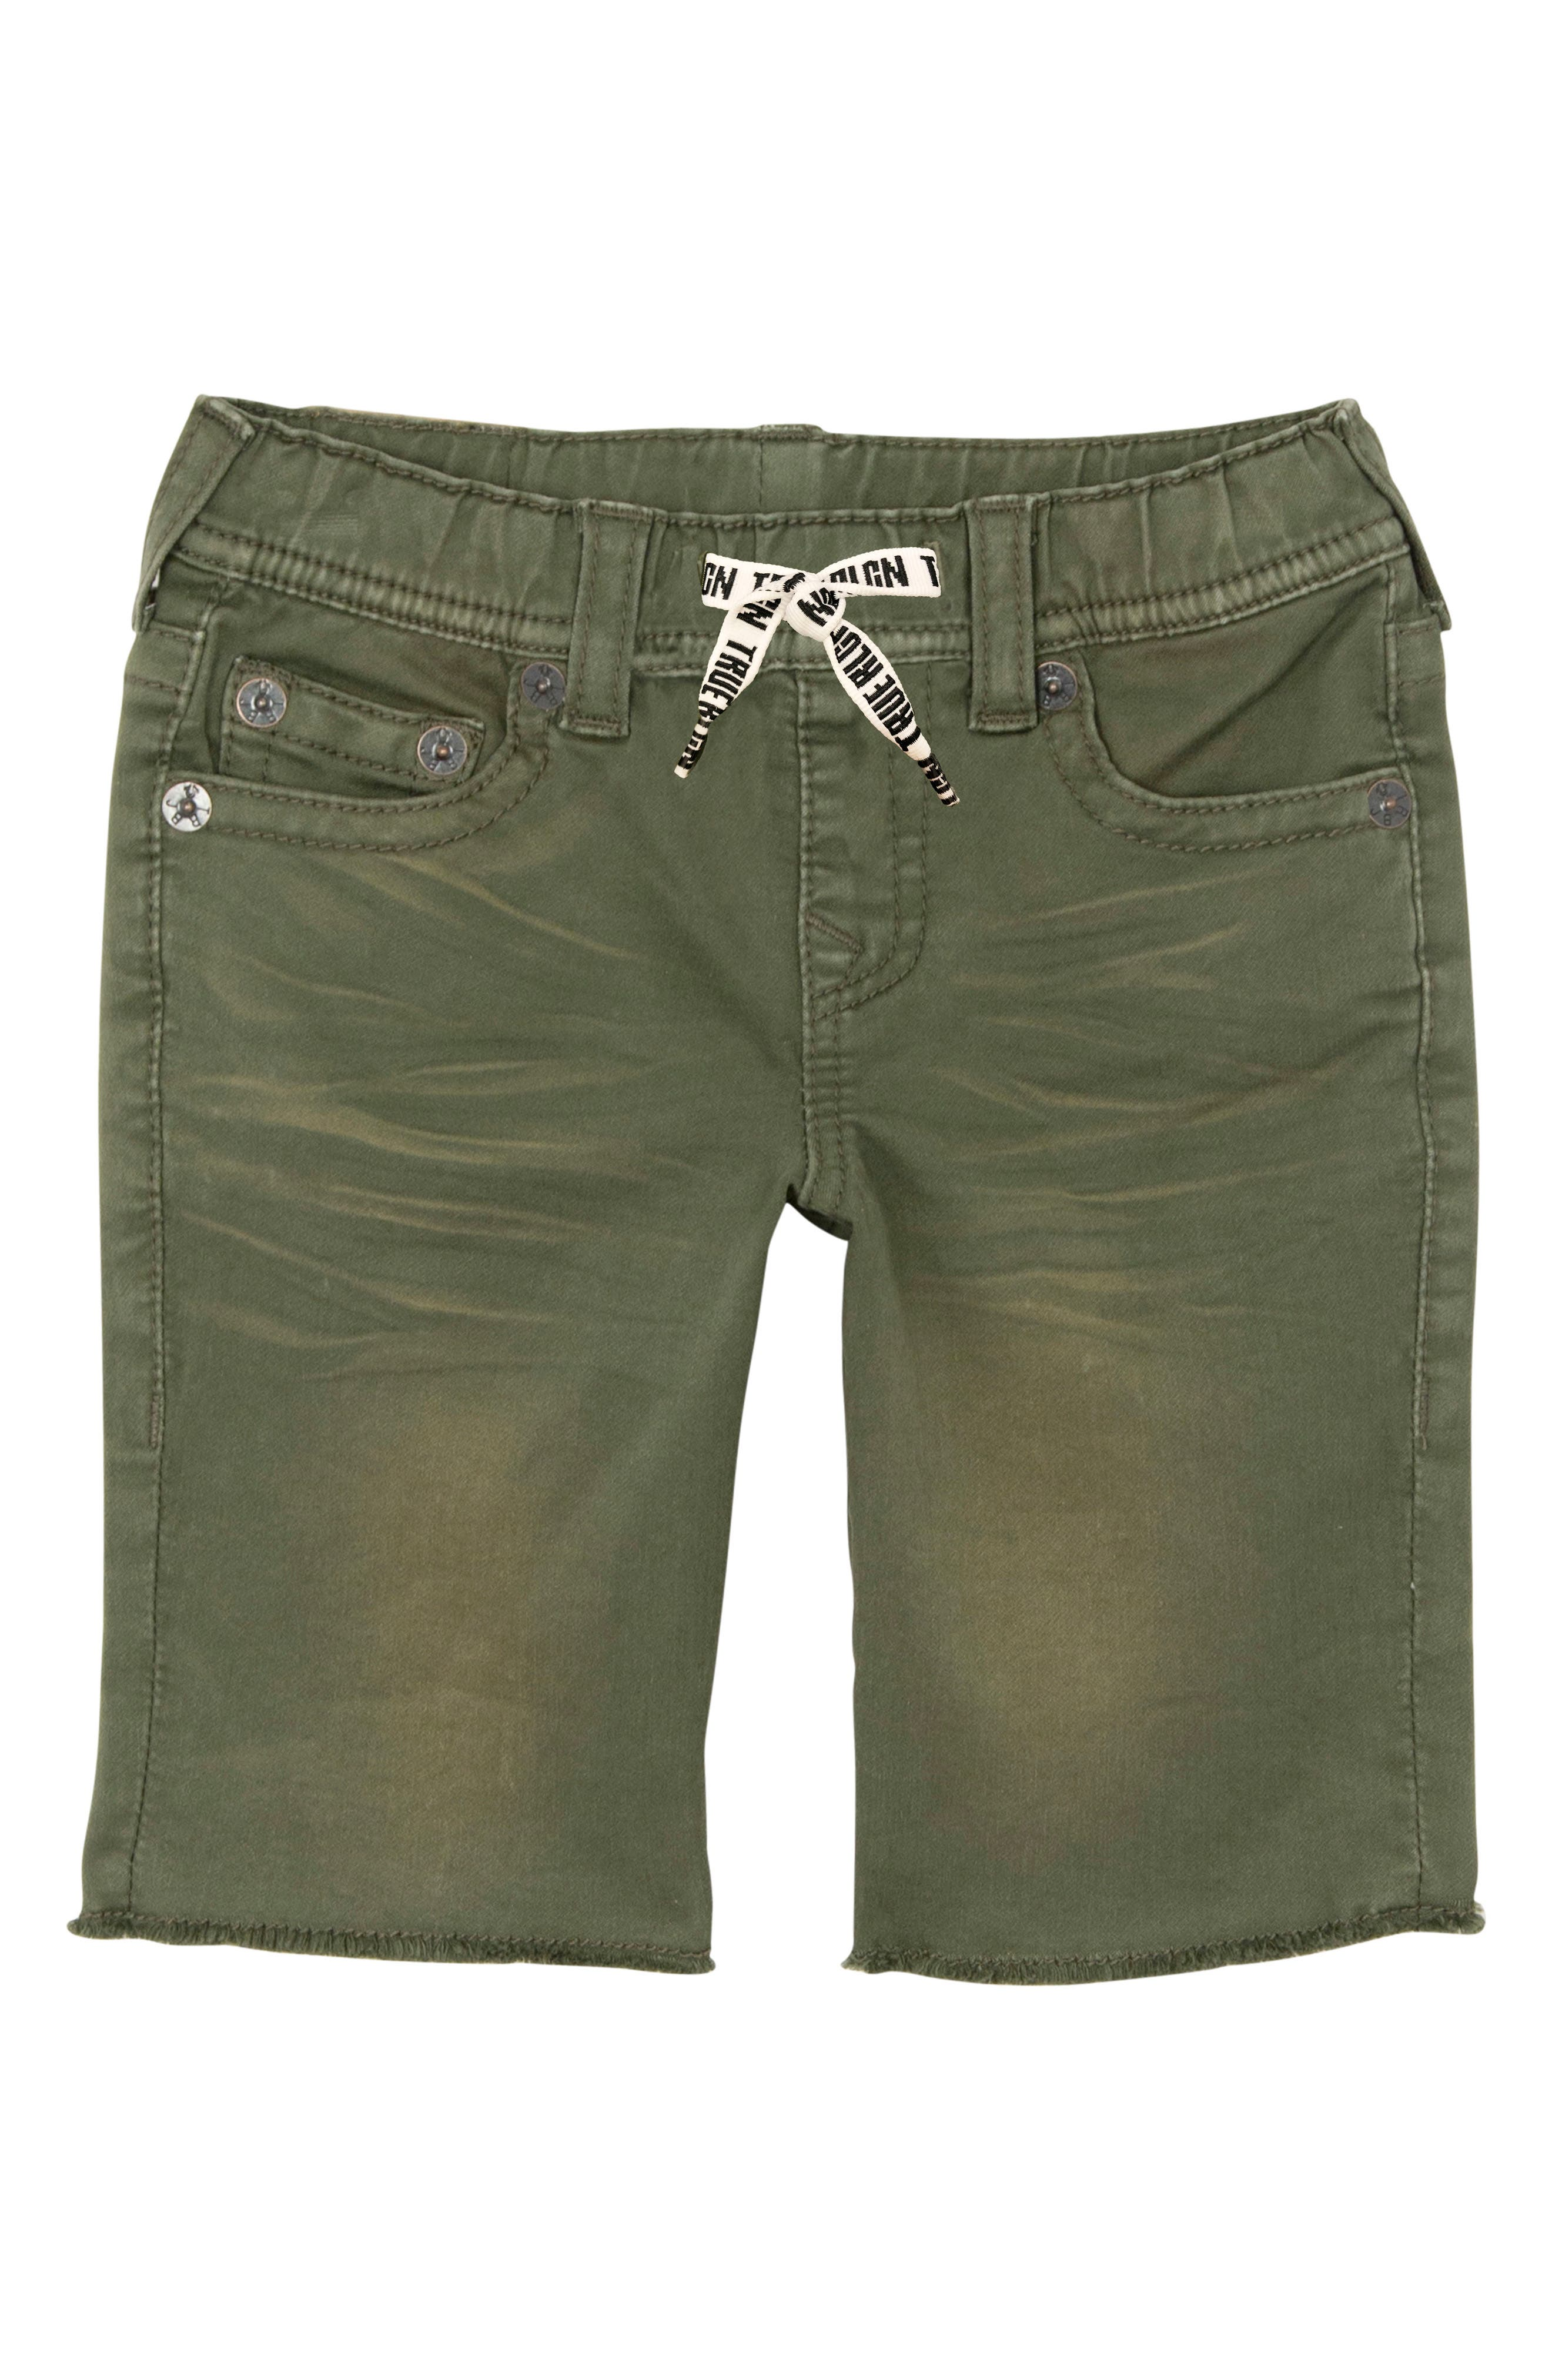 Geno French Terry Shorts,                             Main thumbnail 1, color,                             Olive